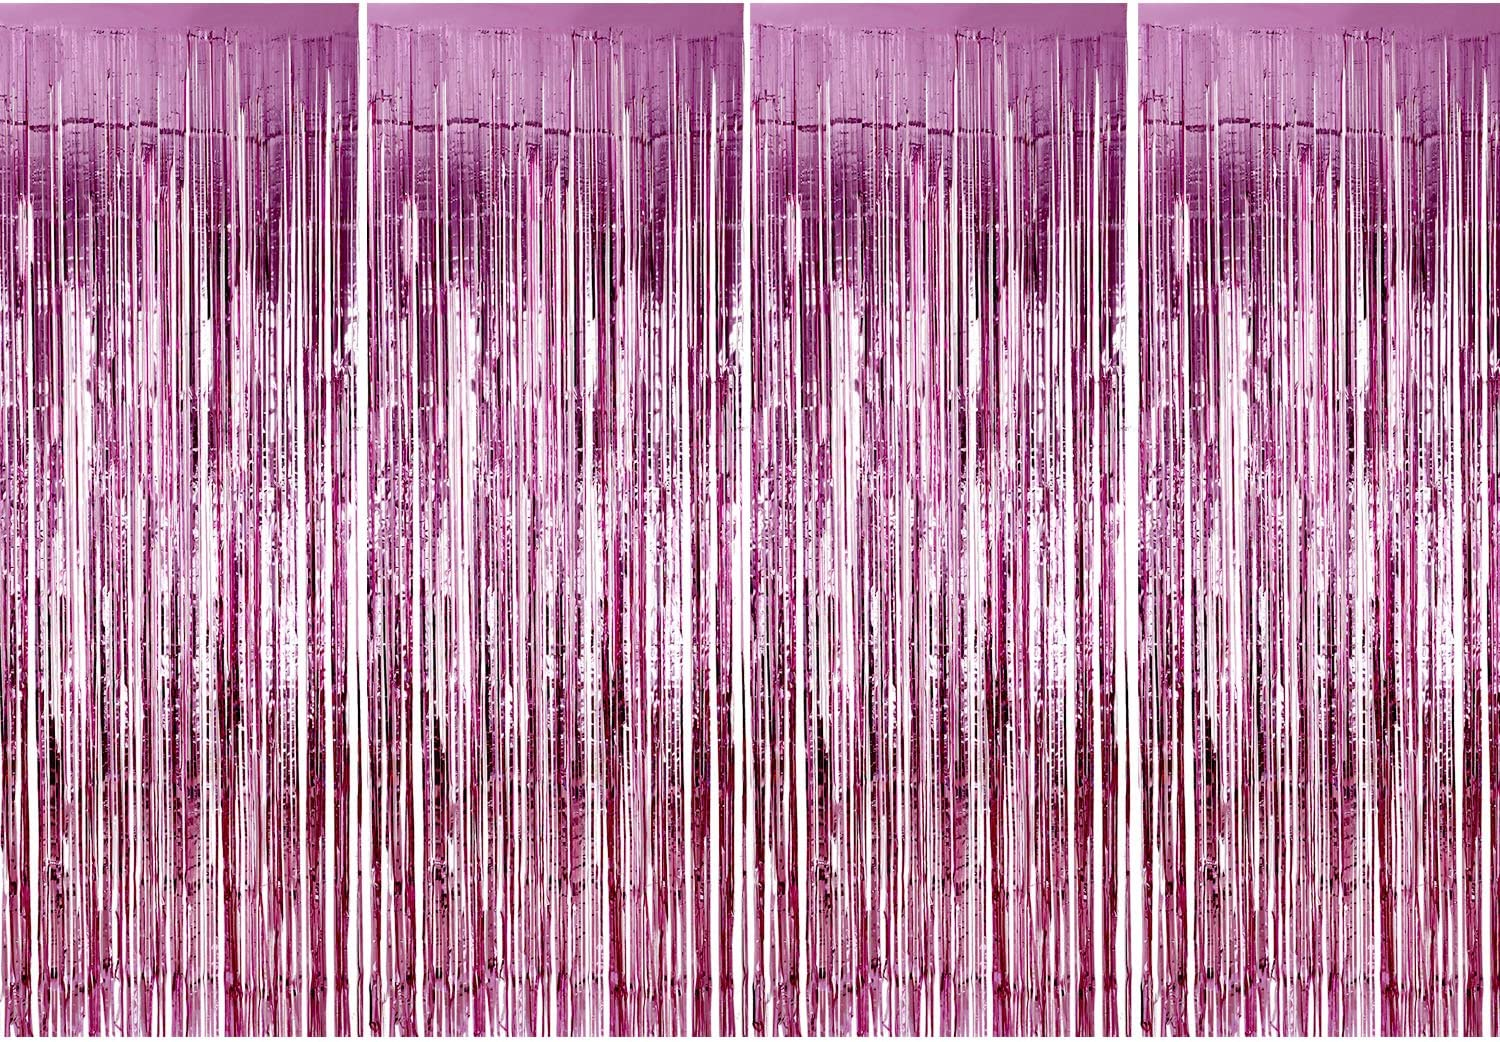 Sumind 4 Pack Foil Curtains Metallic Fringe Curtains Shimmer Curtain for Birthday Wedding Party Christmas Decorations (Pink)